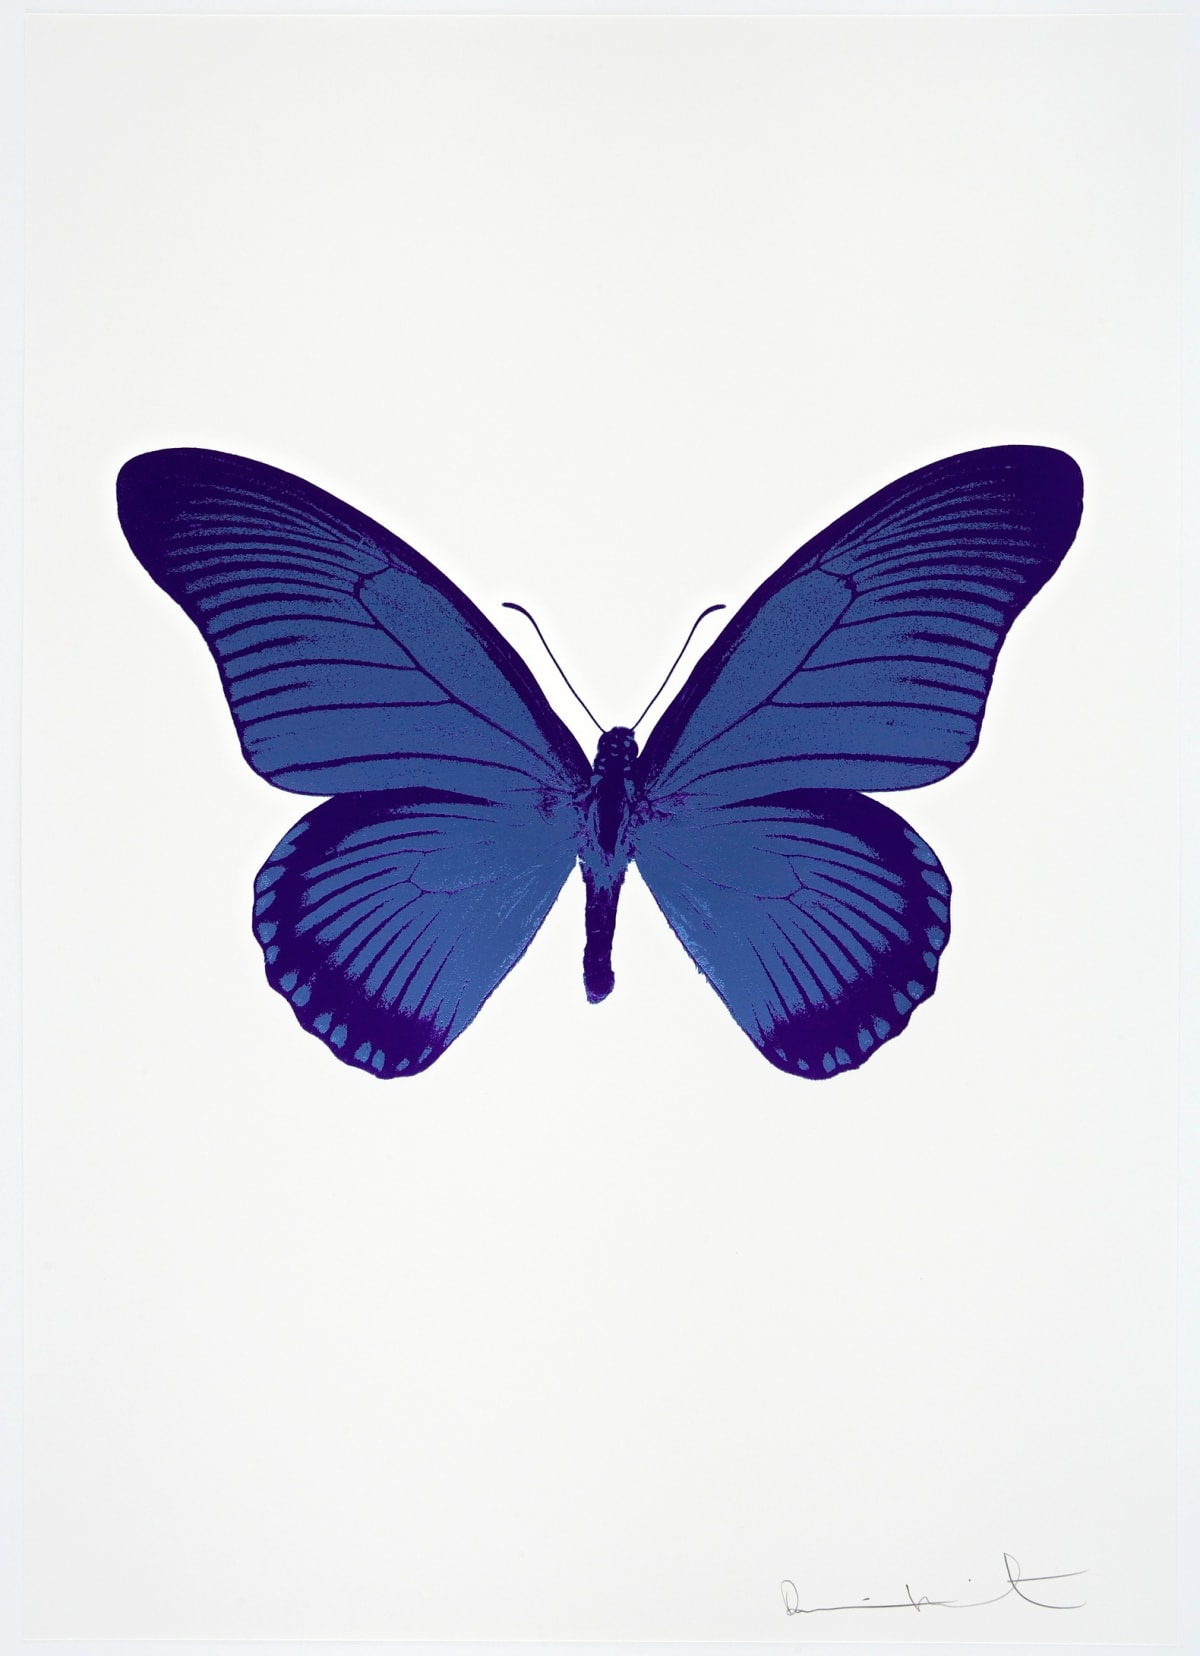 Damien Hirst The Souls IV - Frost Blue/Imperial Purple/Imperial Purple Damien Hirst butterfly foil print for sale Damien Hirst print for sale , 2010 3 colour foil block on 300gsm Arches 88 archival paper. Signed and numbered. Published by Paul Stolper and Other Criteria 72 x 51cm OC8027 / 1418-50 Edition of 15